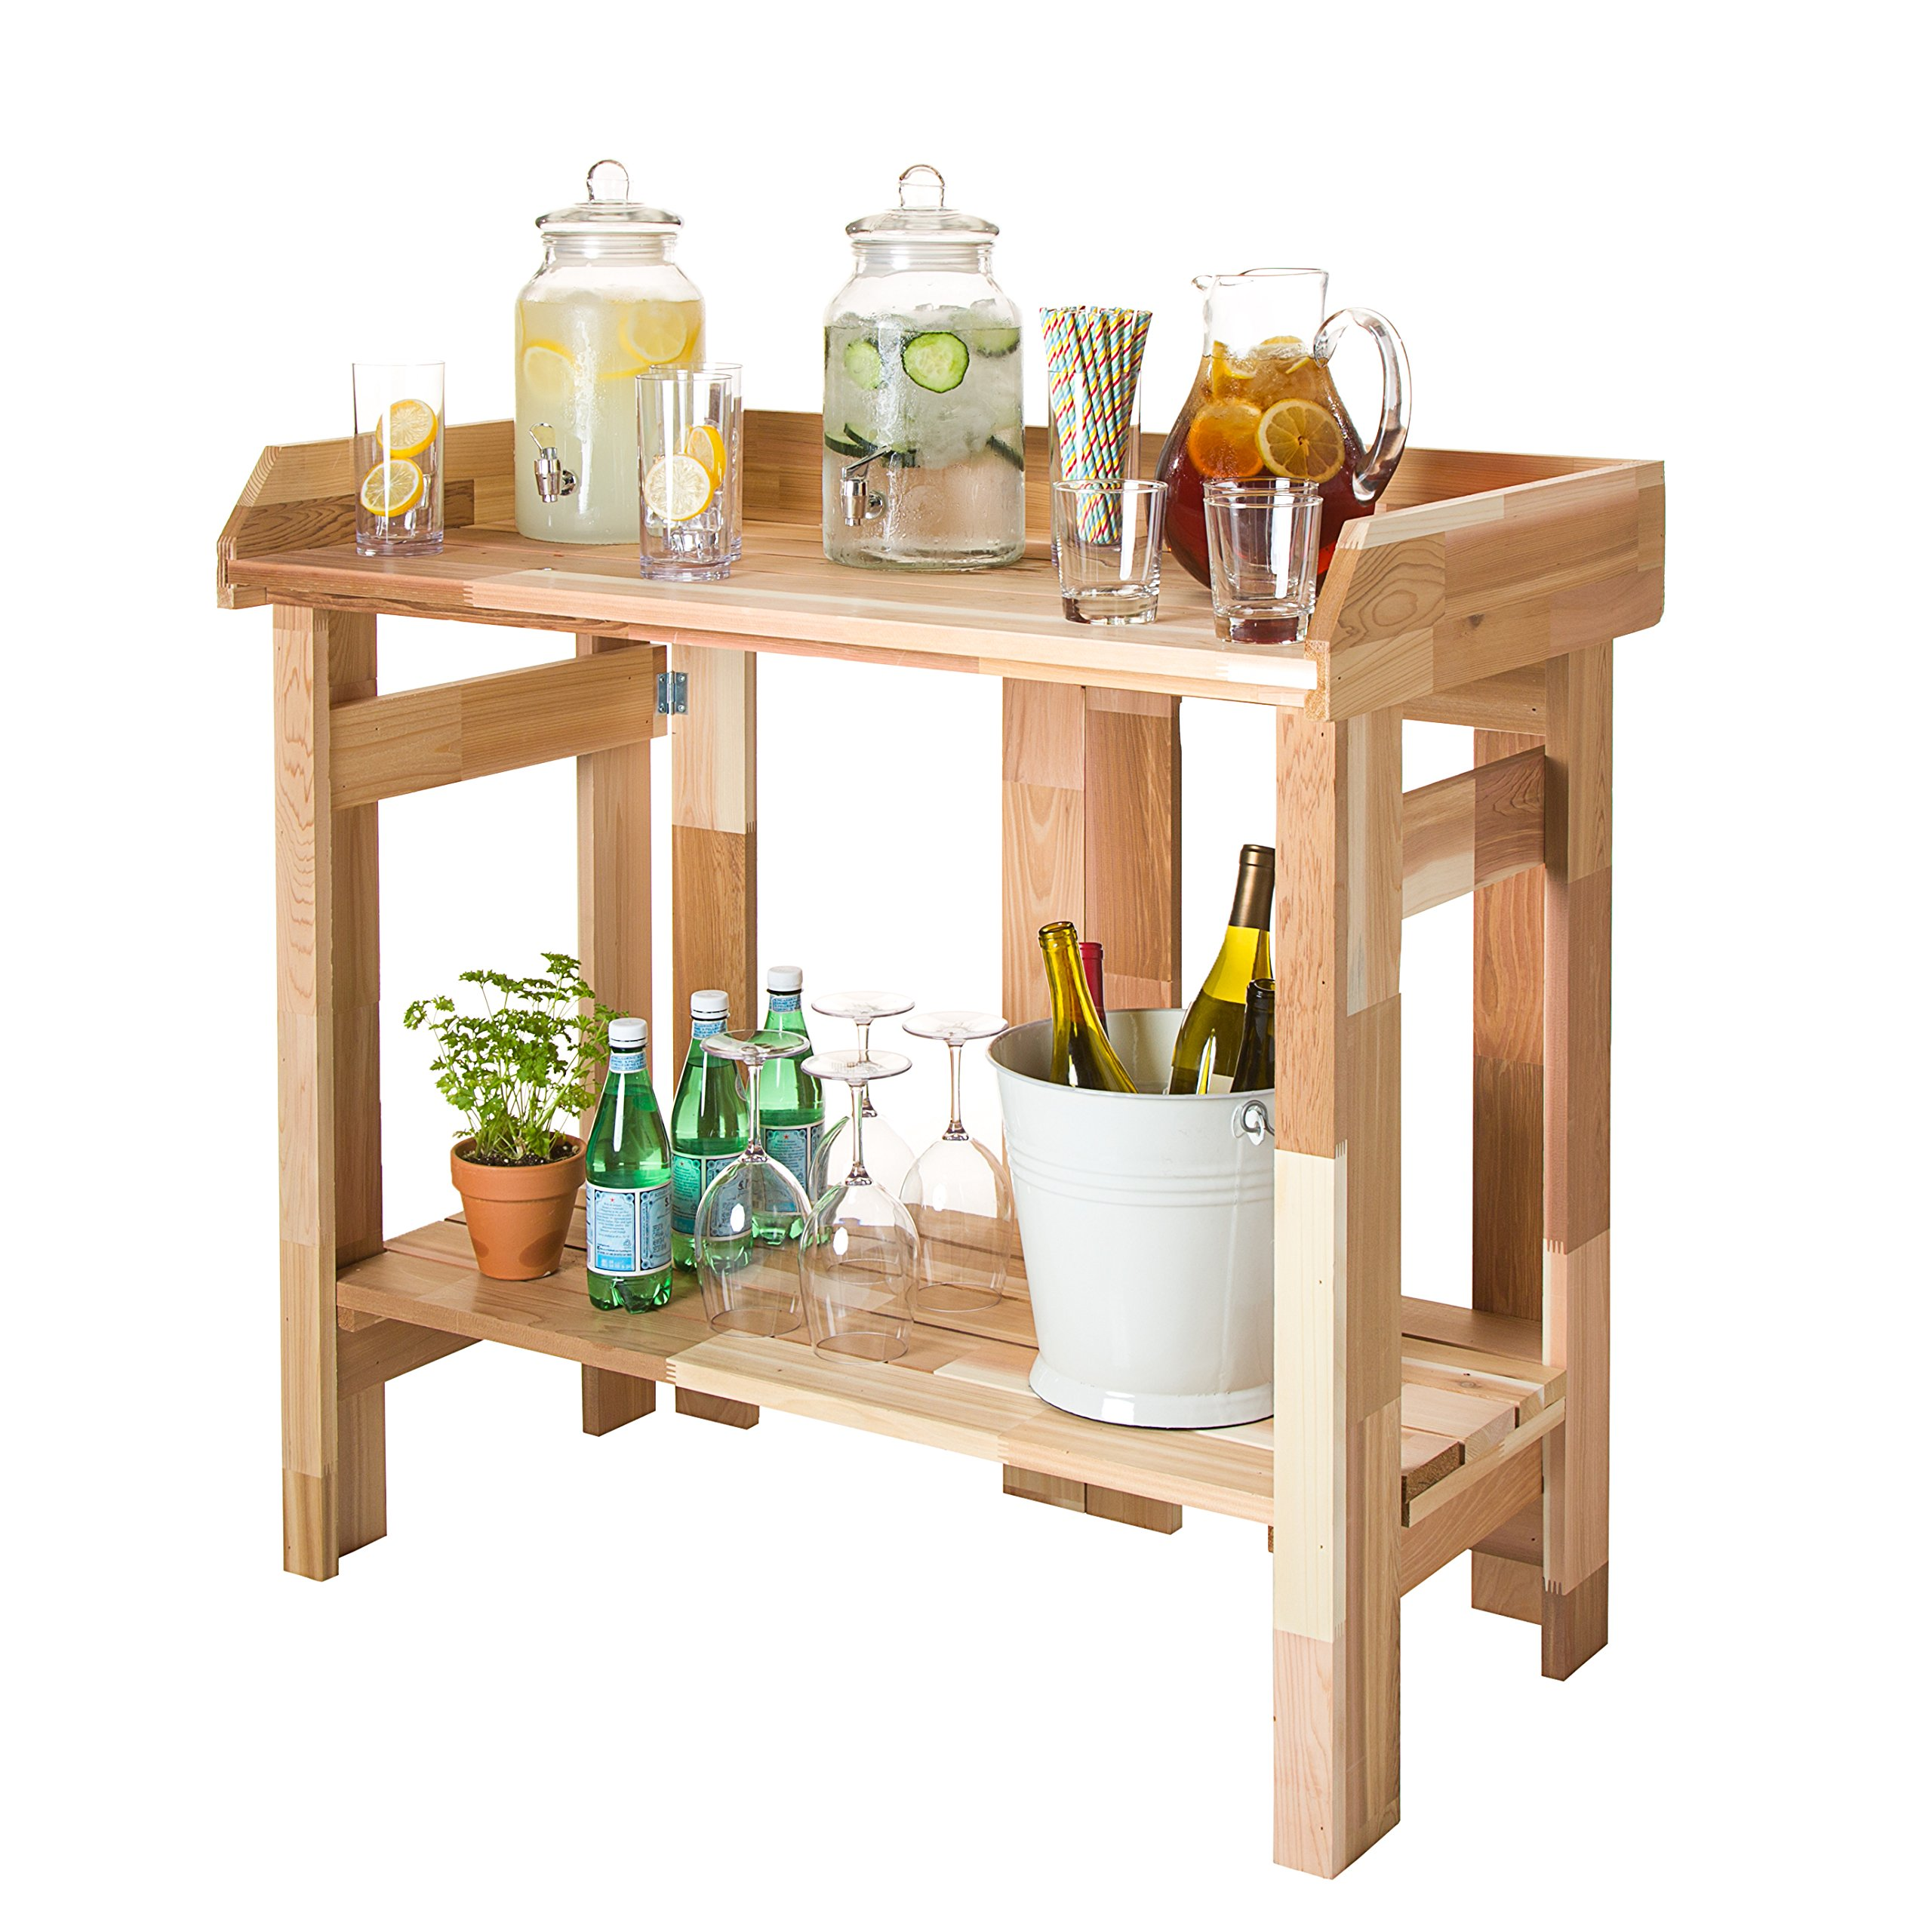 CedarCraft Folding Potting Bench & Event Table by CedarCraft (Image #2)